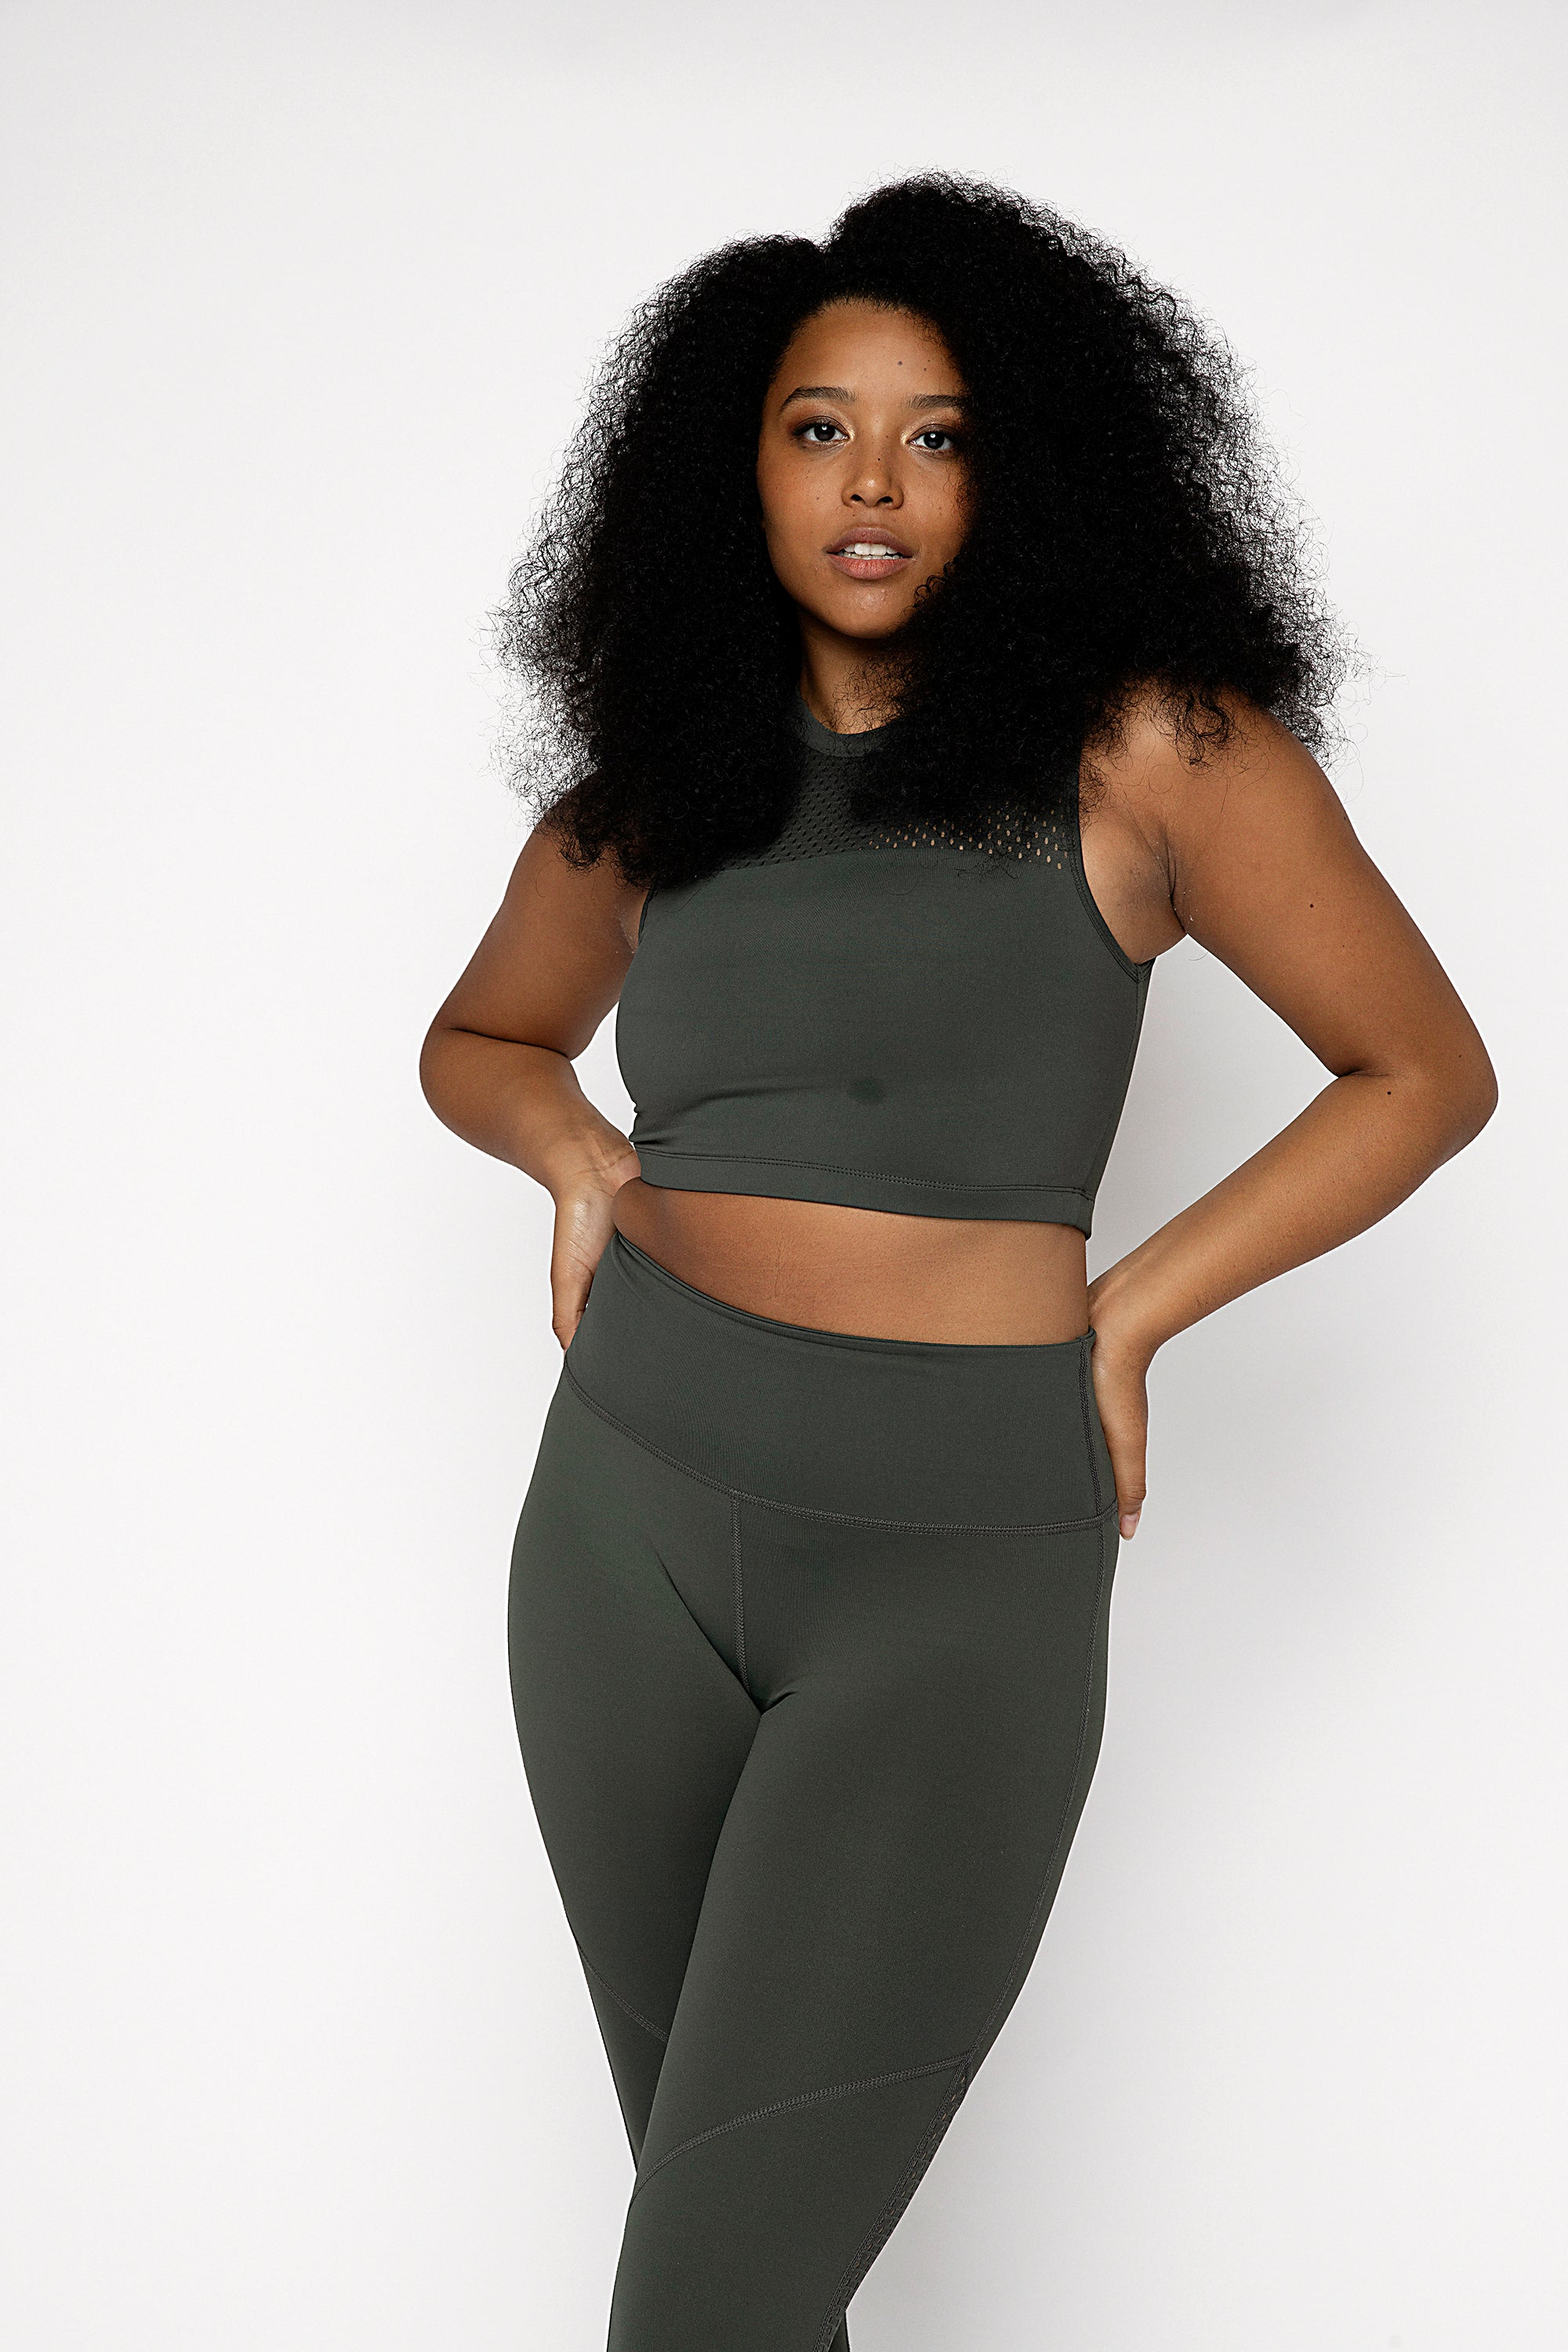 Jungle Khaki high neck supportive gym crop top with punched panel detail on the front and back. Double lined at the front for support and super fitted, cropped length